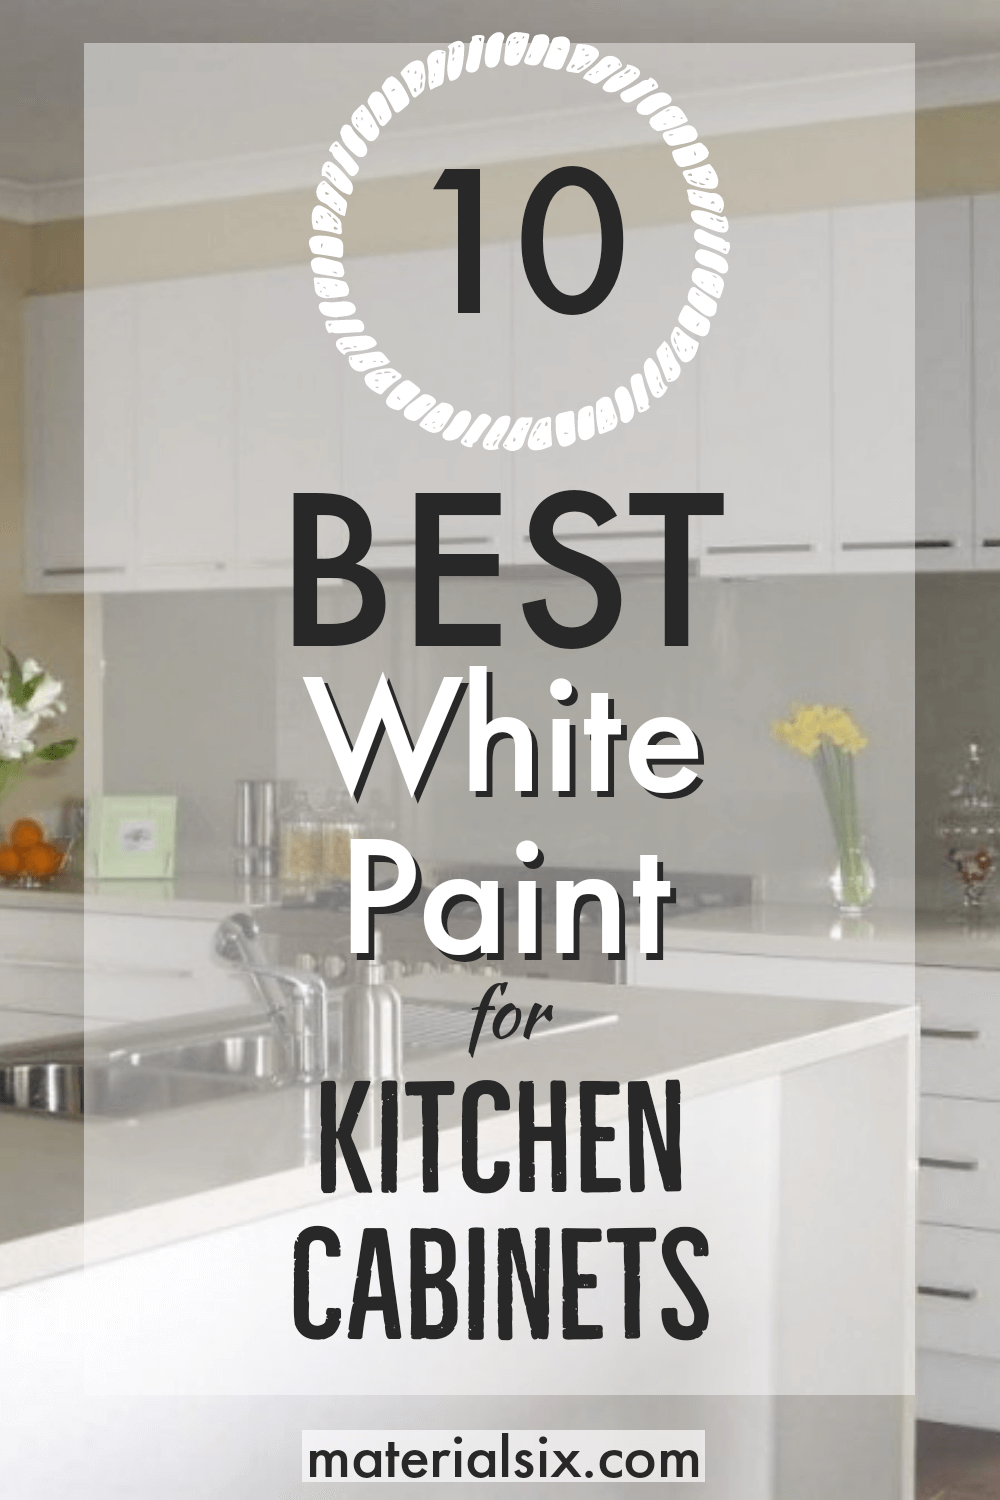 10 Best White Paint For Kitchen Cabinets Materialsix Com In 2020 Painting Kitchen Cabinets Best White Paint Best Paint For Kitchen